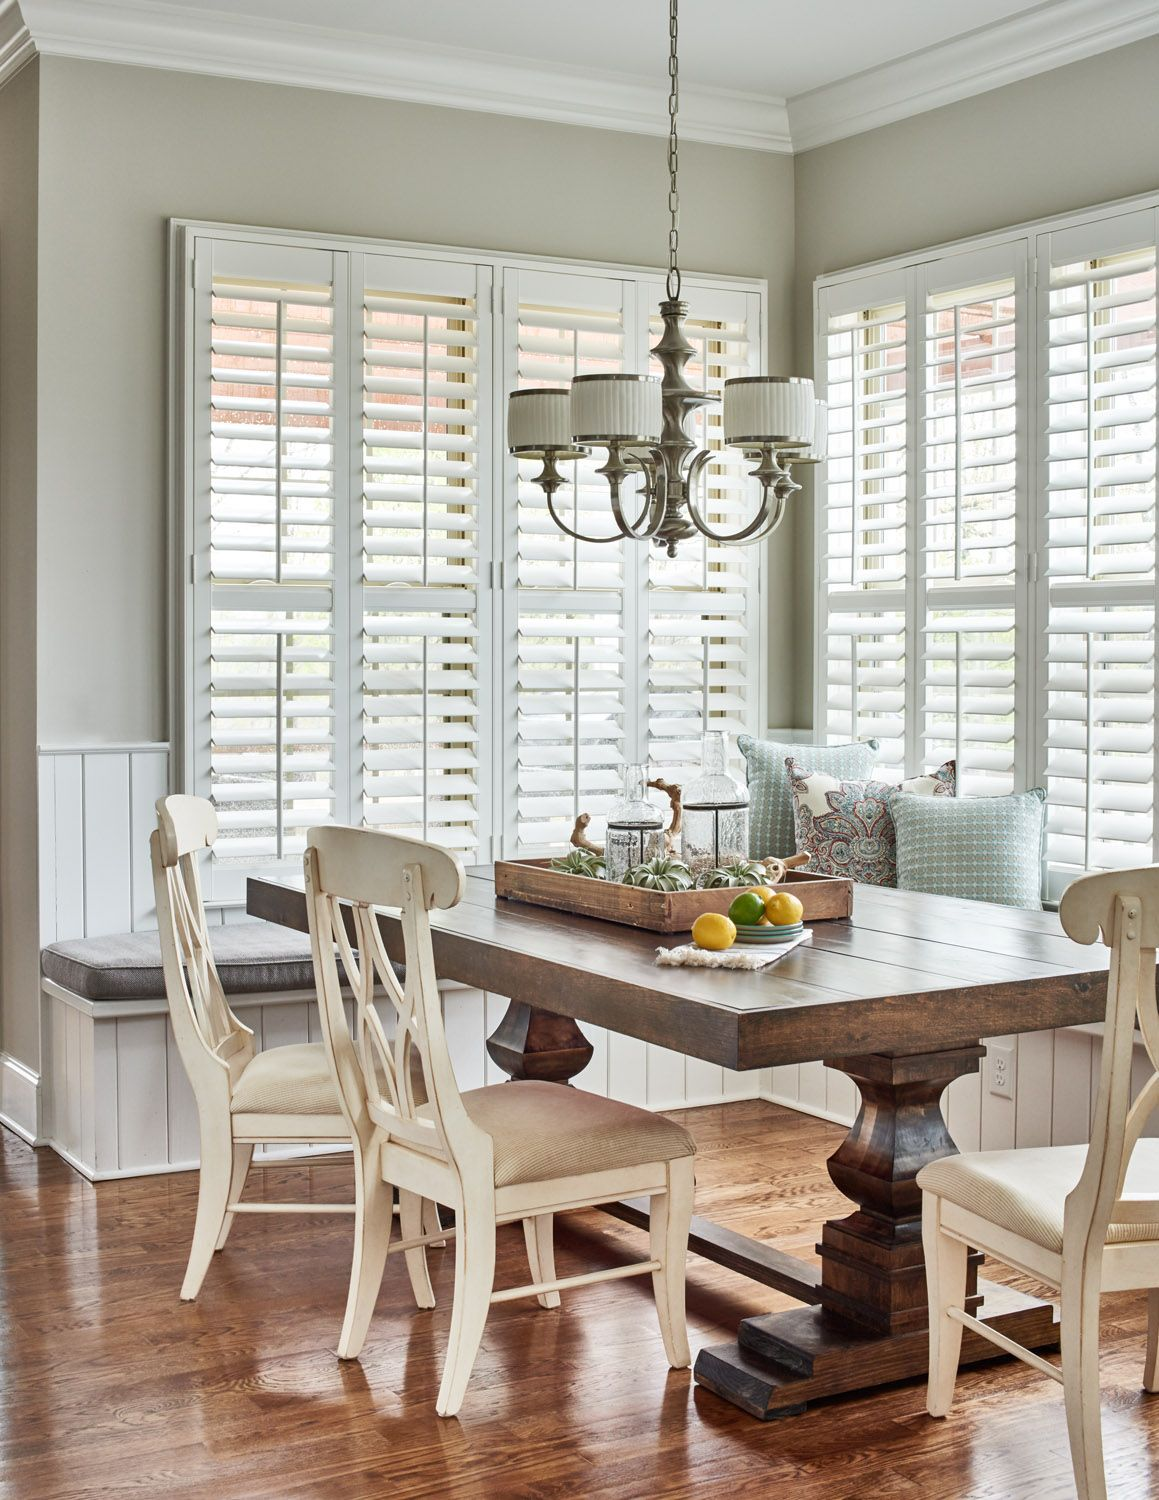 Eat In Kitchen With Farmhouse Table And Banquette Seating